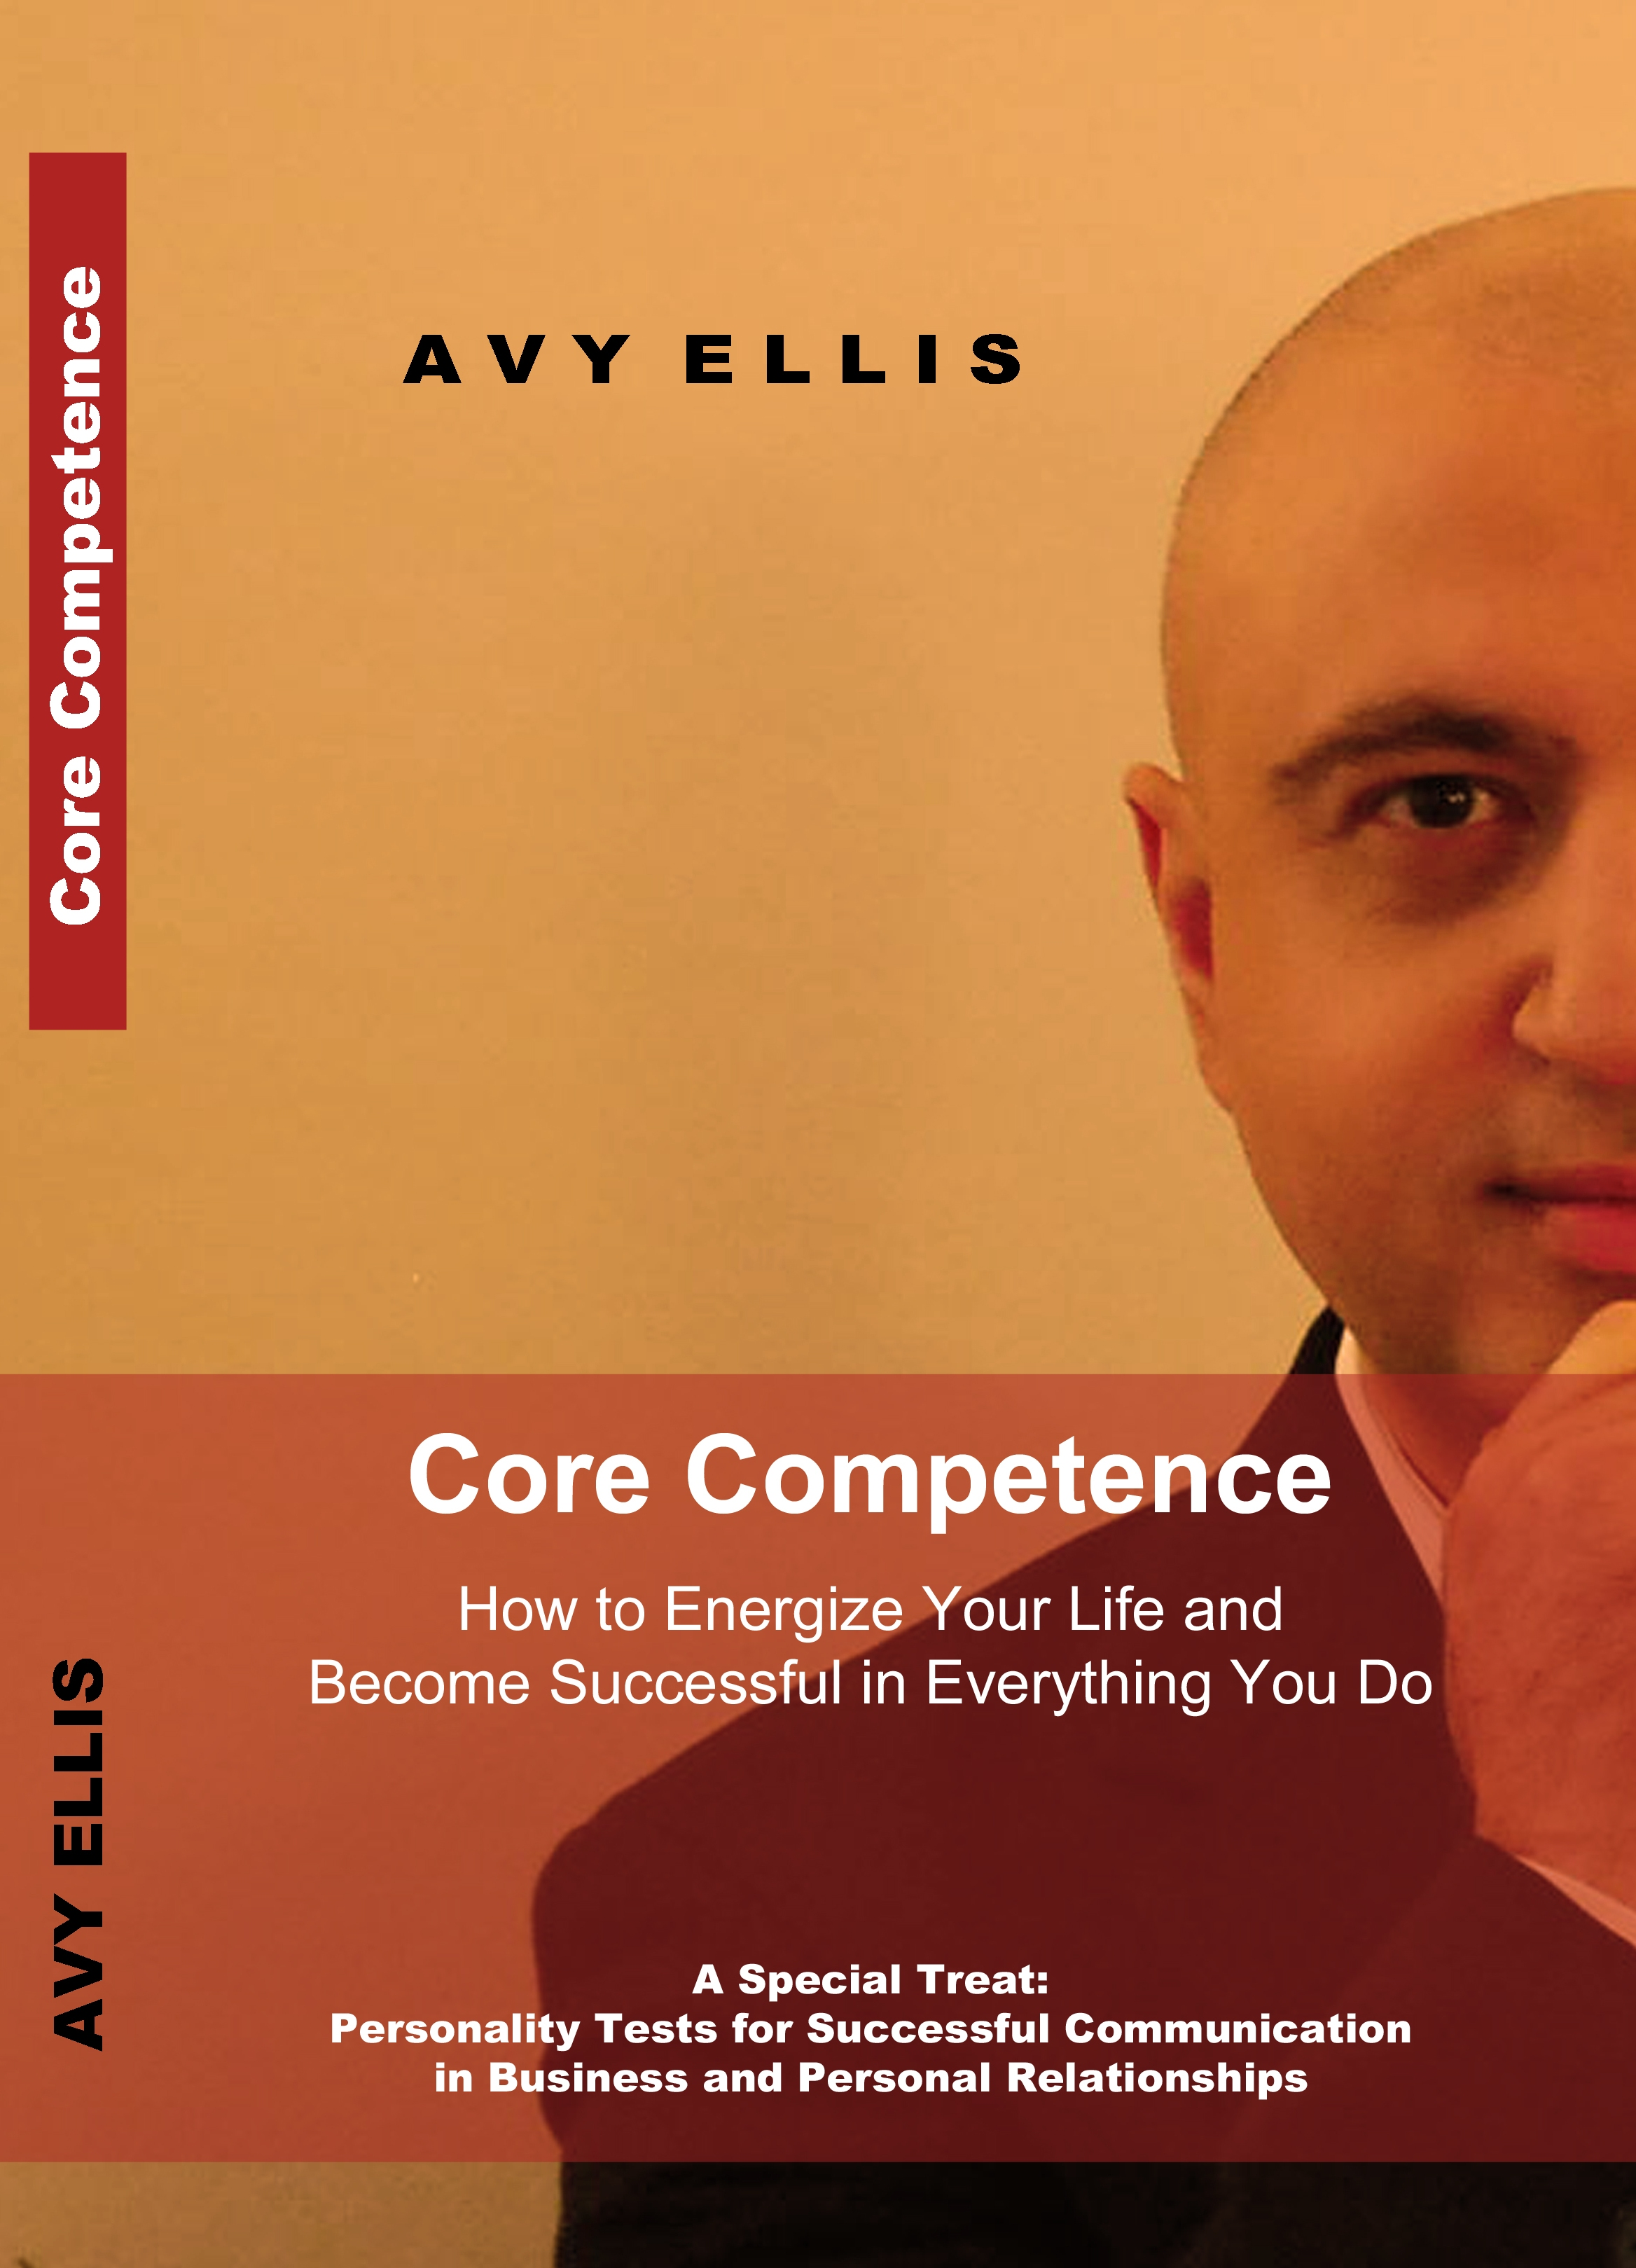 Core Competence: How to Energize Your Life and Become Successful in Everything You Do